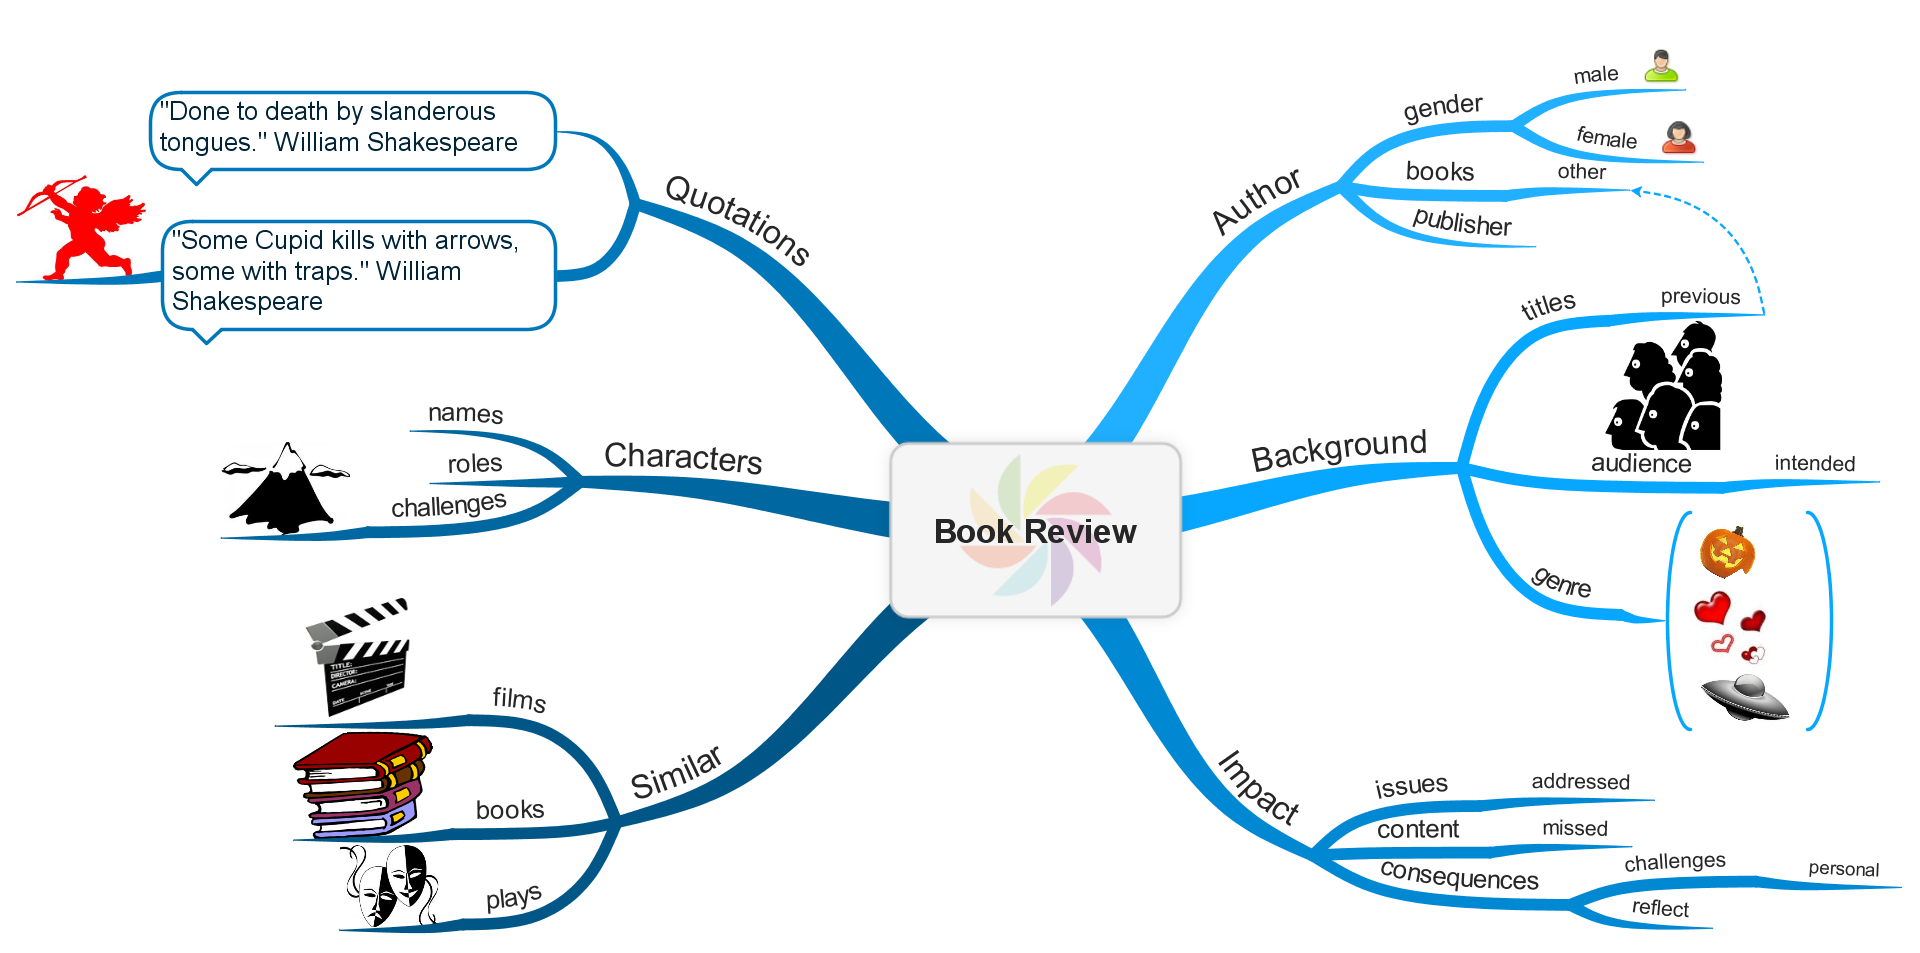 education example mind maps mind mapping view